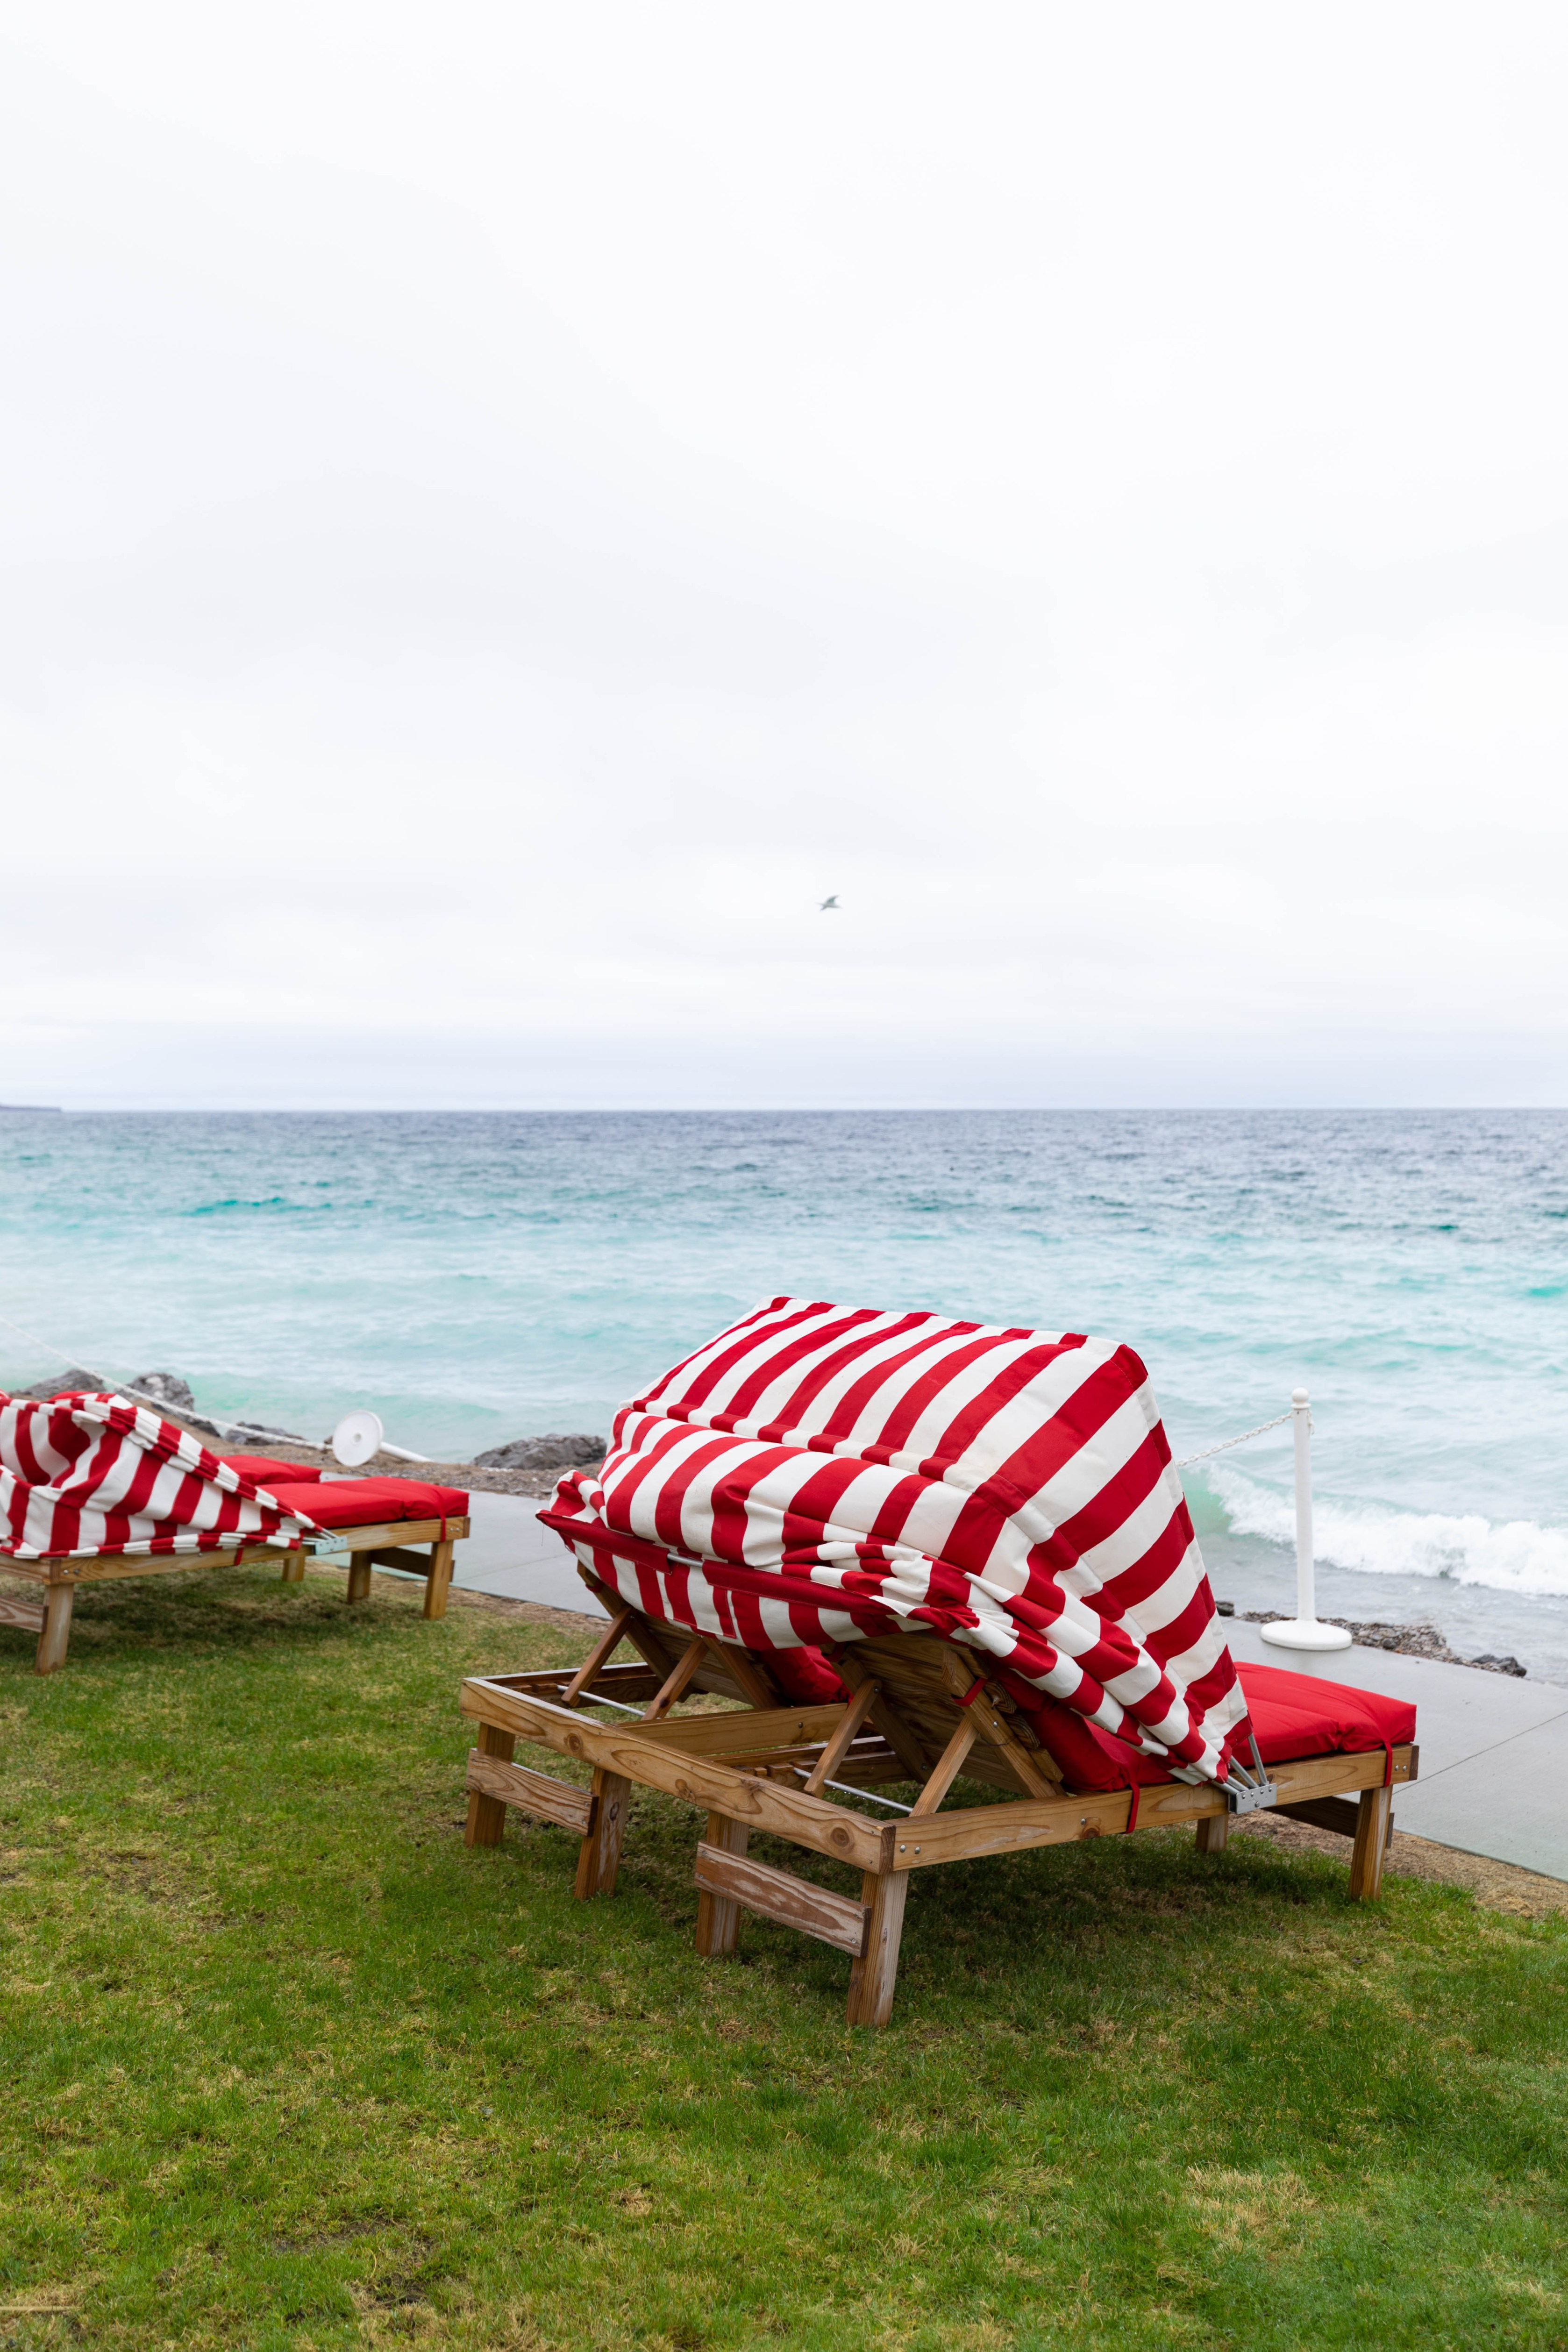 Red and White Striped Beach Chairs at The Inn at Bay Harbor Autograph Collection Hotel in Bay Harbor Northern Michigan Petoskey Area Luxury Hotels of the World Top 500 Hotels in the World by Annie Fairfax